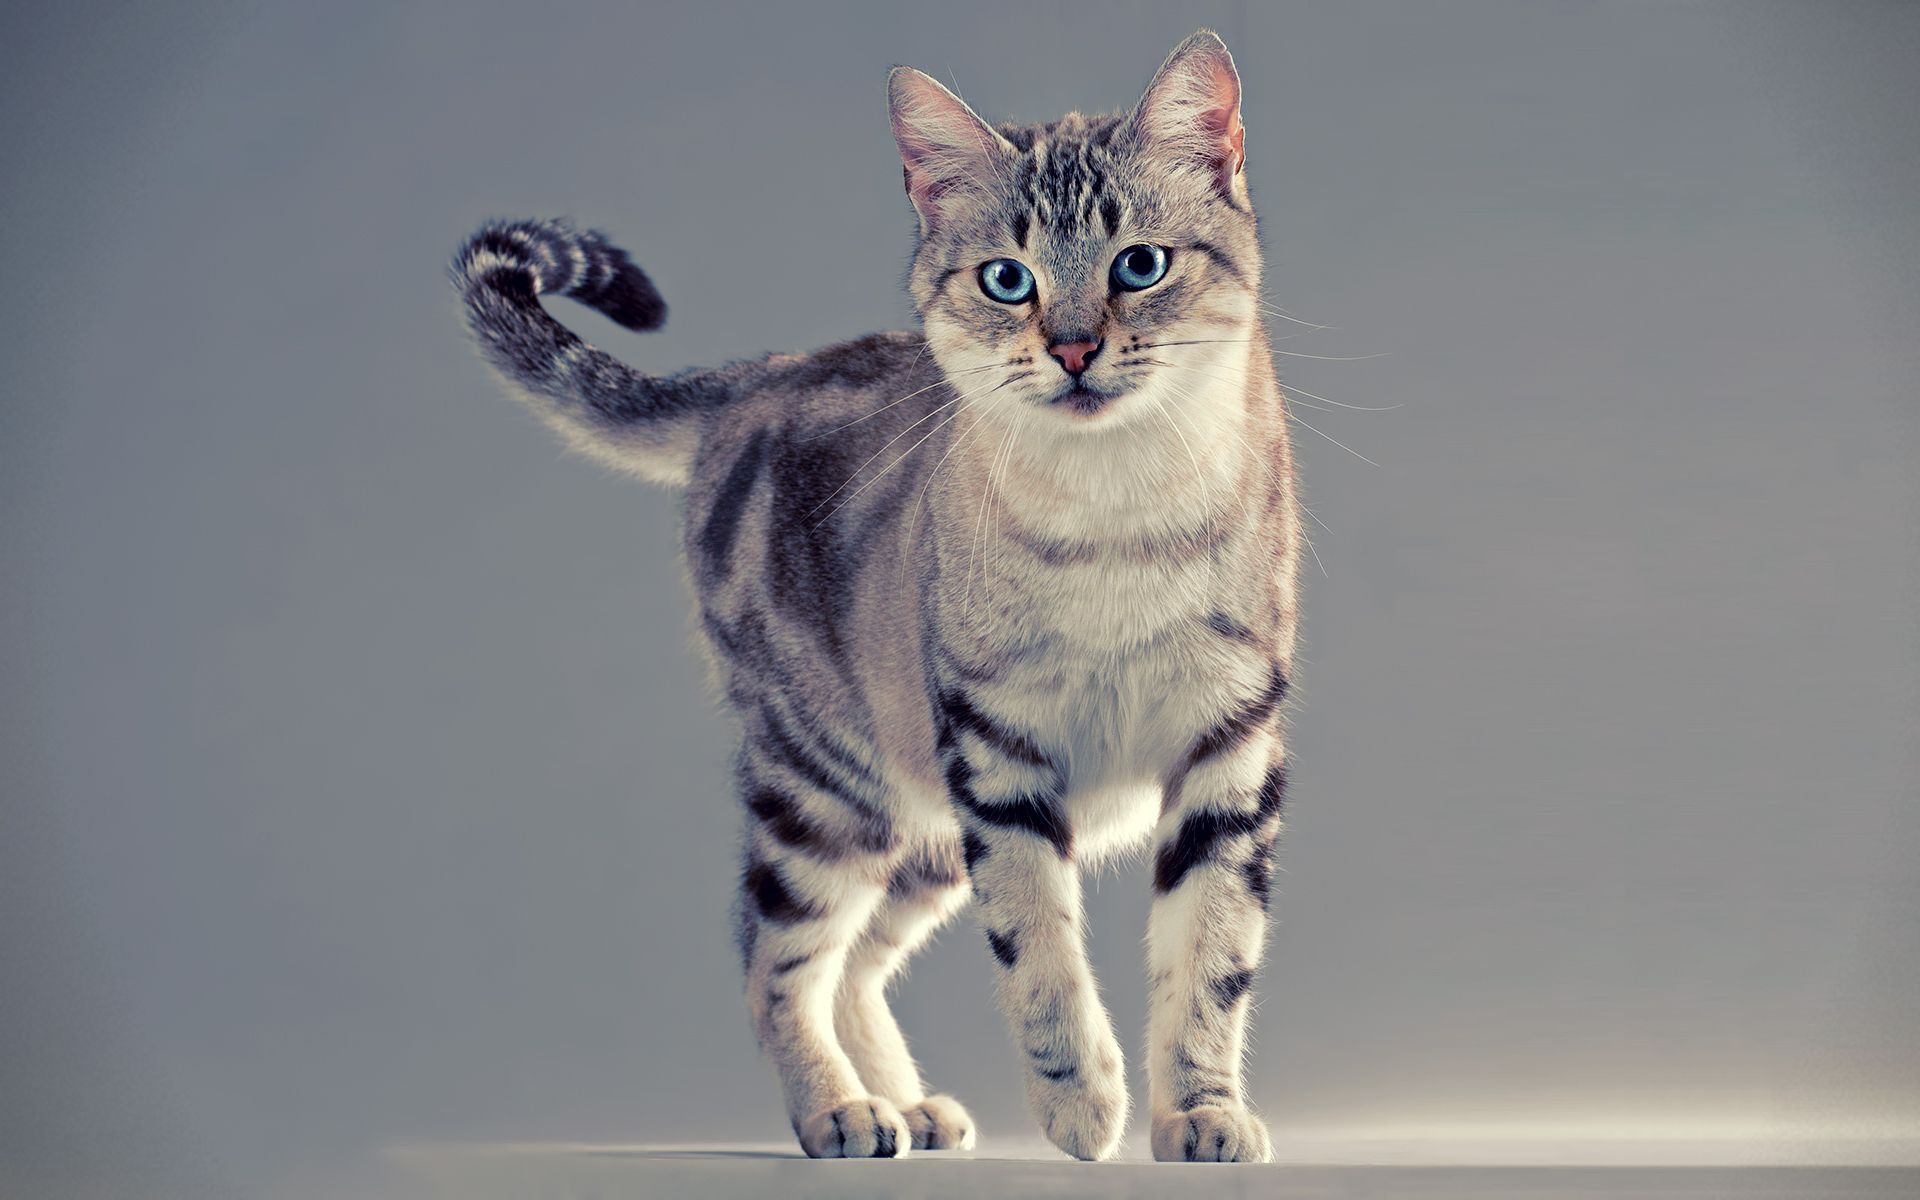 Pretty Cat Wallpapers Hd Free 19890 American Shorthair Cat Cat Breeds Pretty Cats